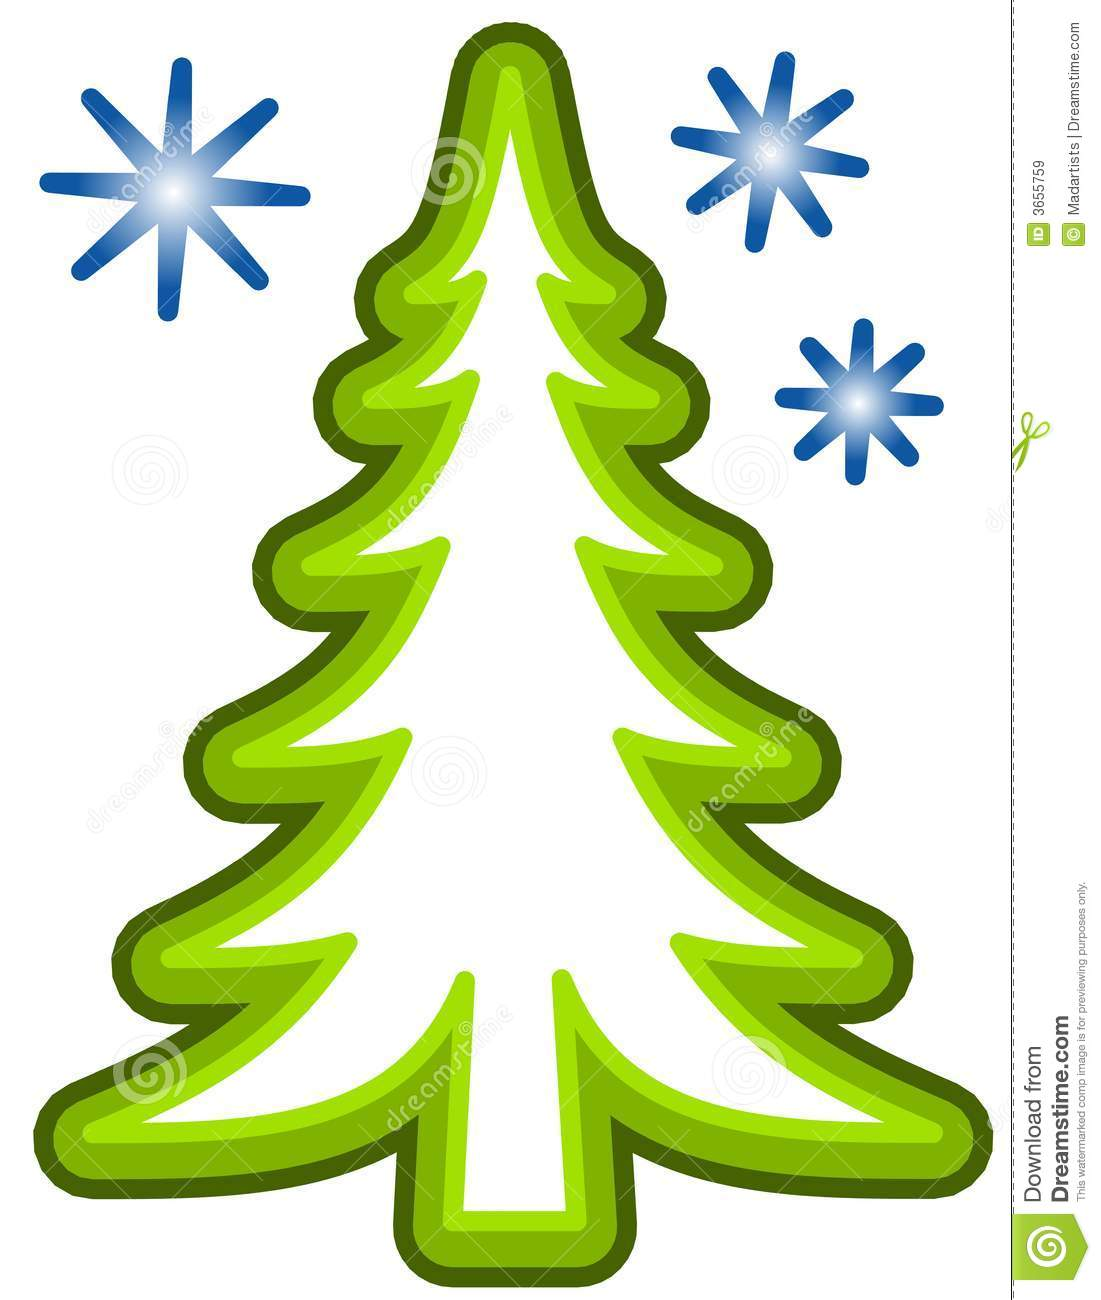 simple christmas tree clip art stock illustration illustration of rh dreamstime com christmas tree ornament clipart free christmas tree star clipart free